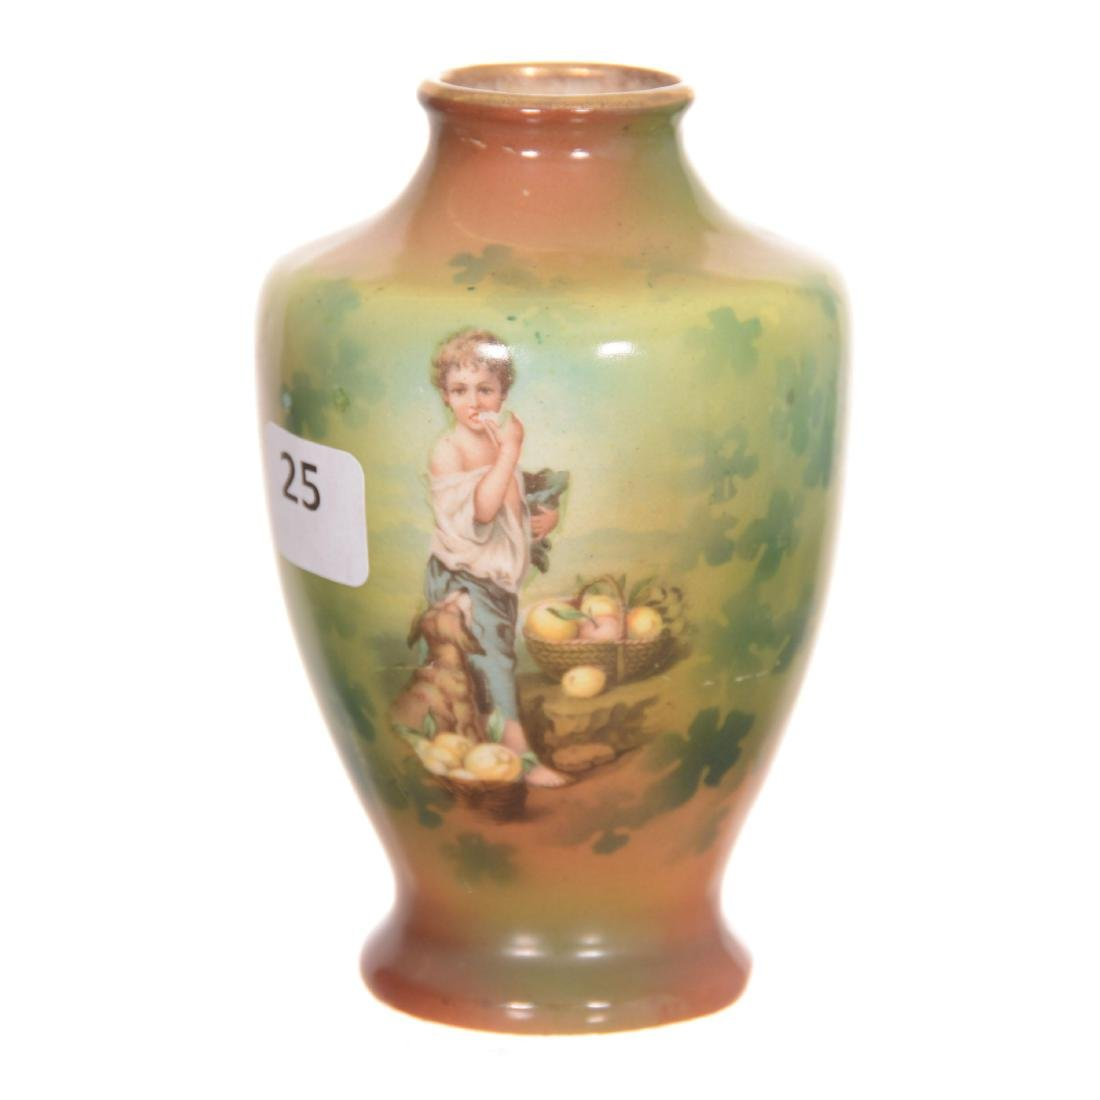 Unmarked Germany Vase